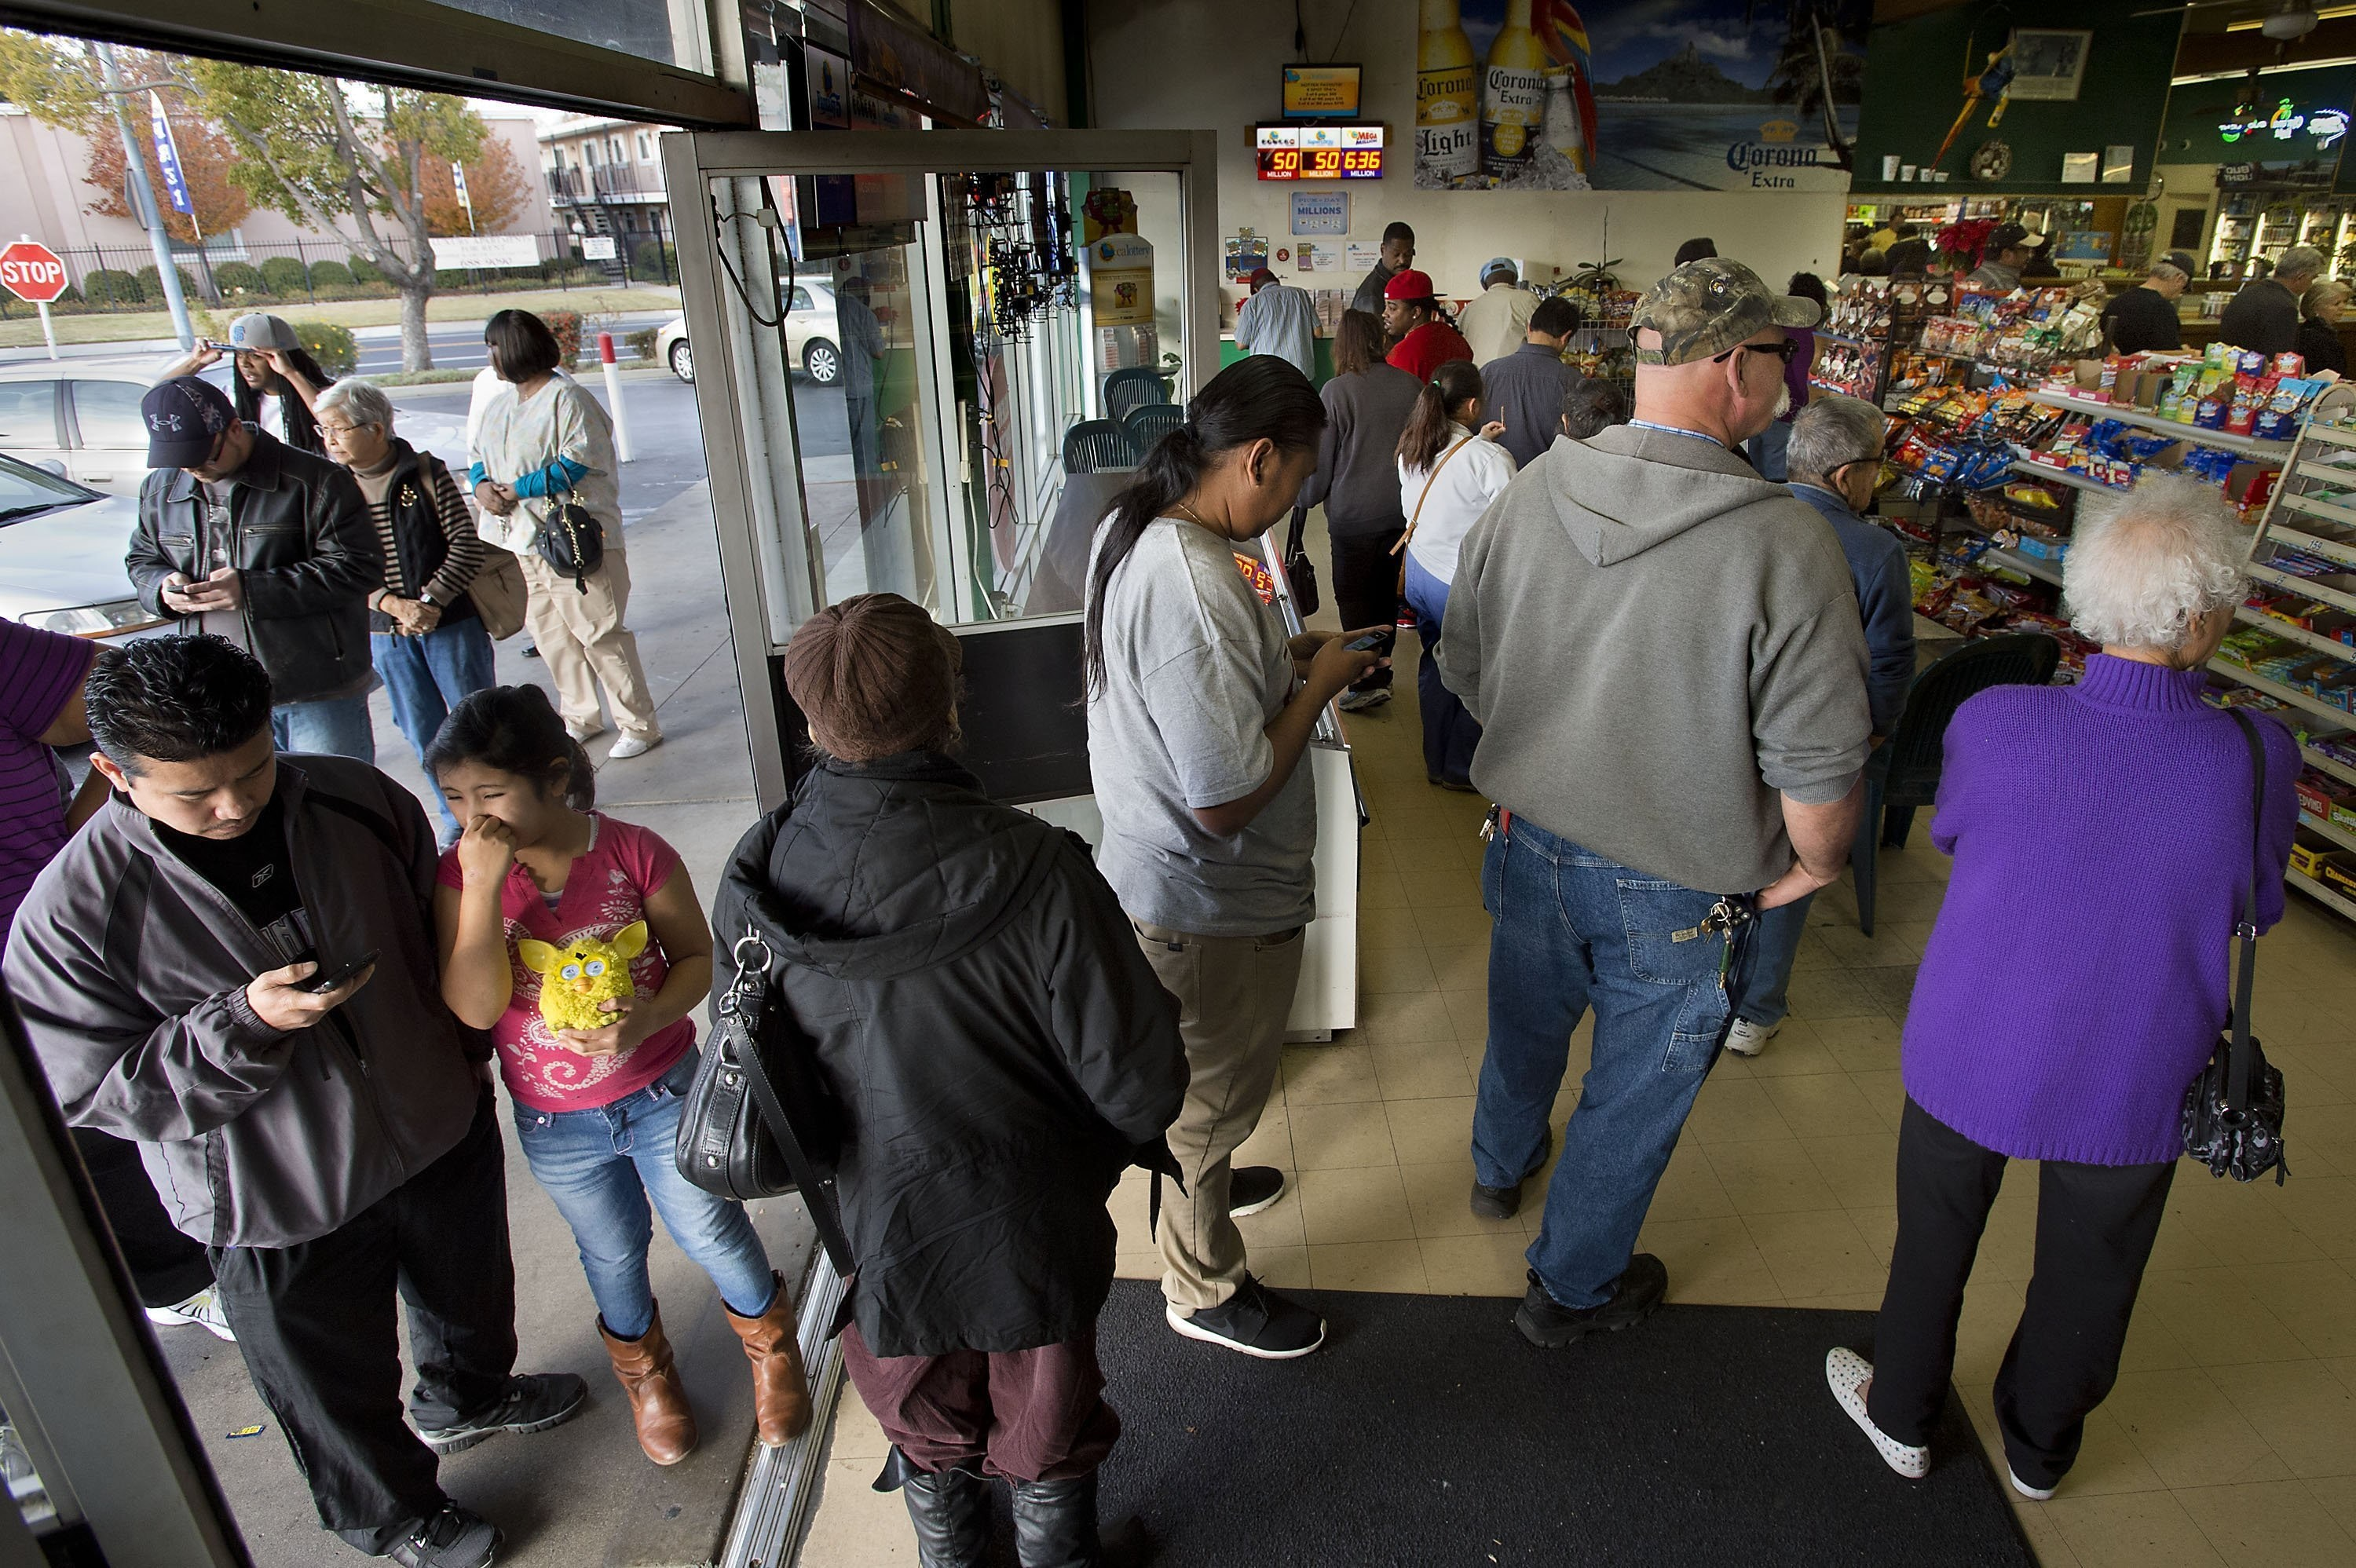 Patrons wait to buy Mega Millions lottery tickets at Lichines Liquor & Deli in Sacramento, Ca., on Tuesday, Dec. 17, 2013. The jackpot has soared to $636 million for Tuesday night's drawing. (Randall Benton/Sacramento Bee/Tribune News Service via Getty Images)